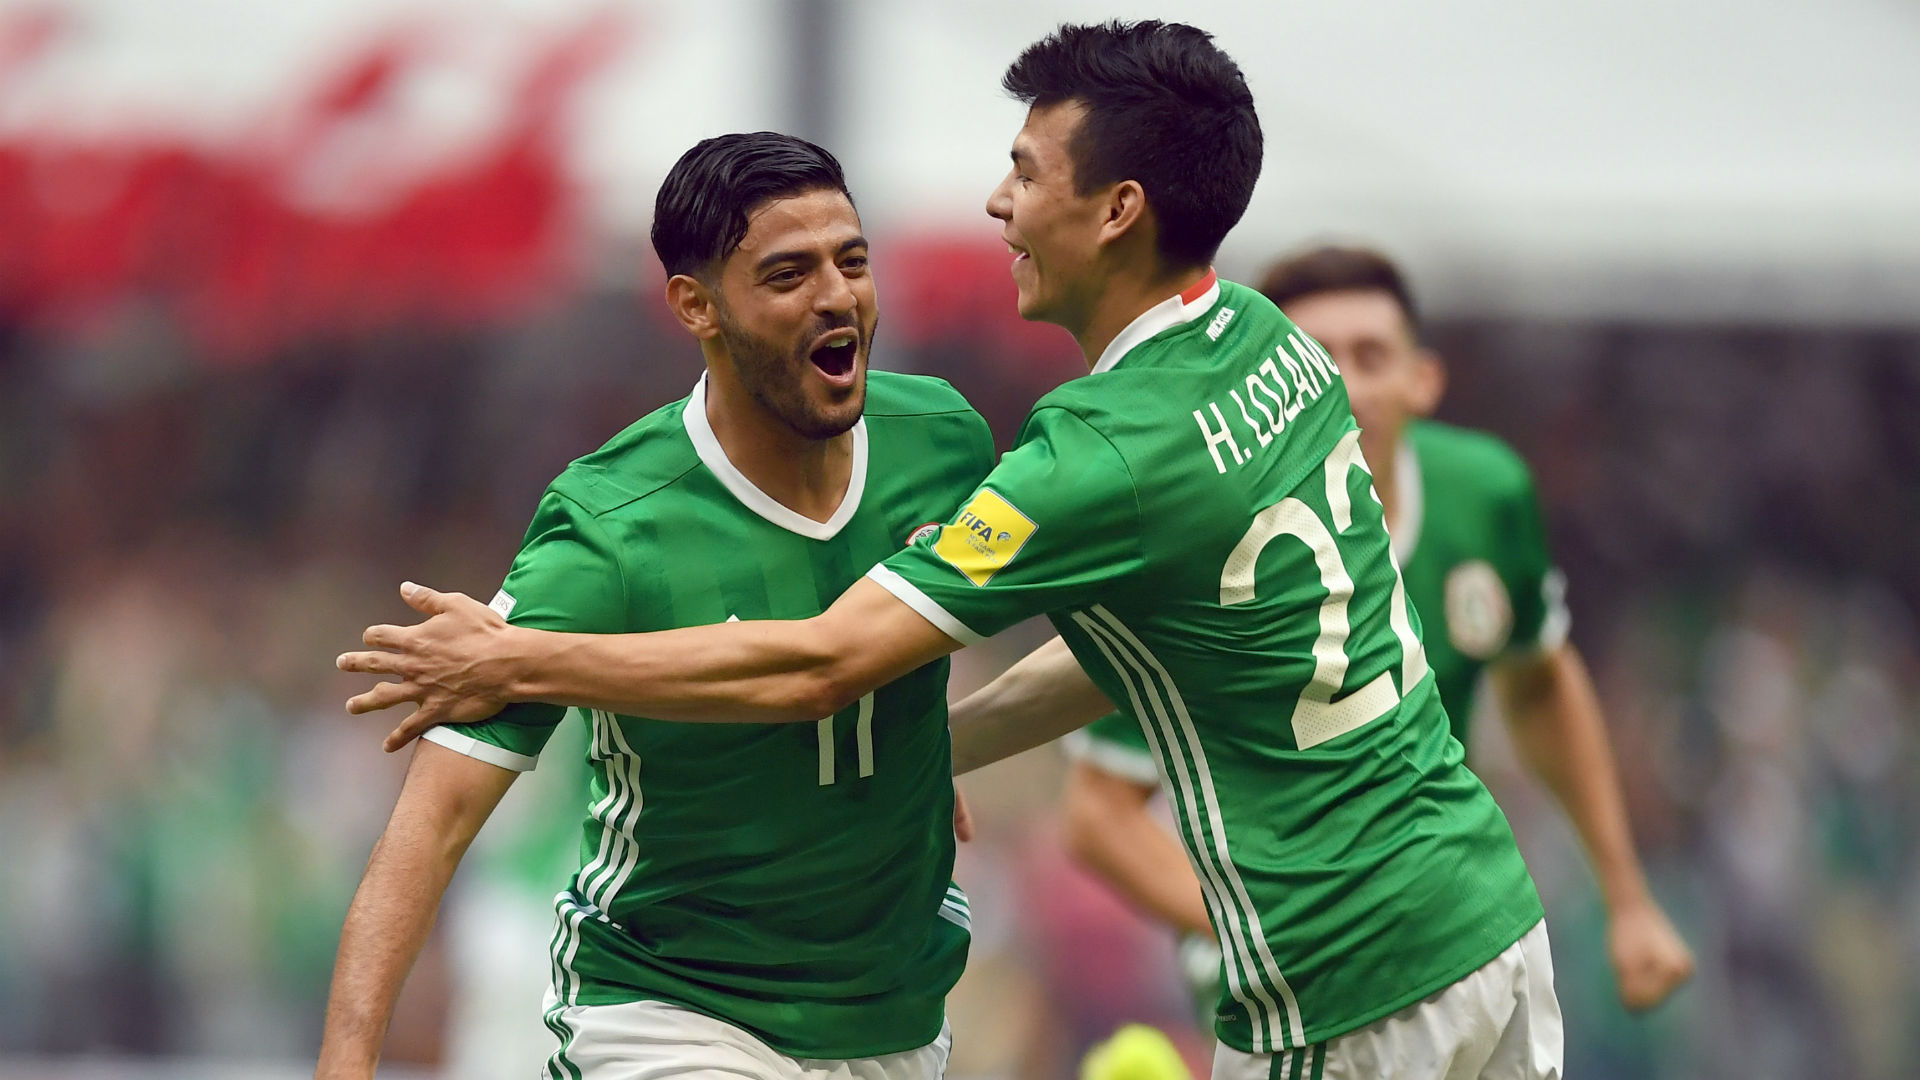 Mexico National Team: Where Were Hirving Lozano And